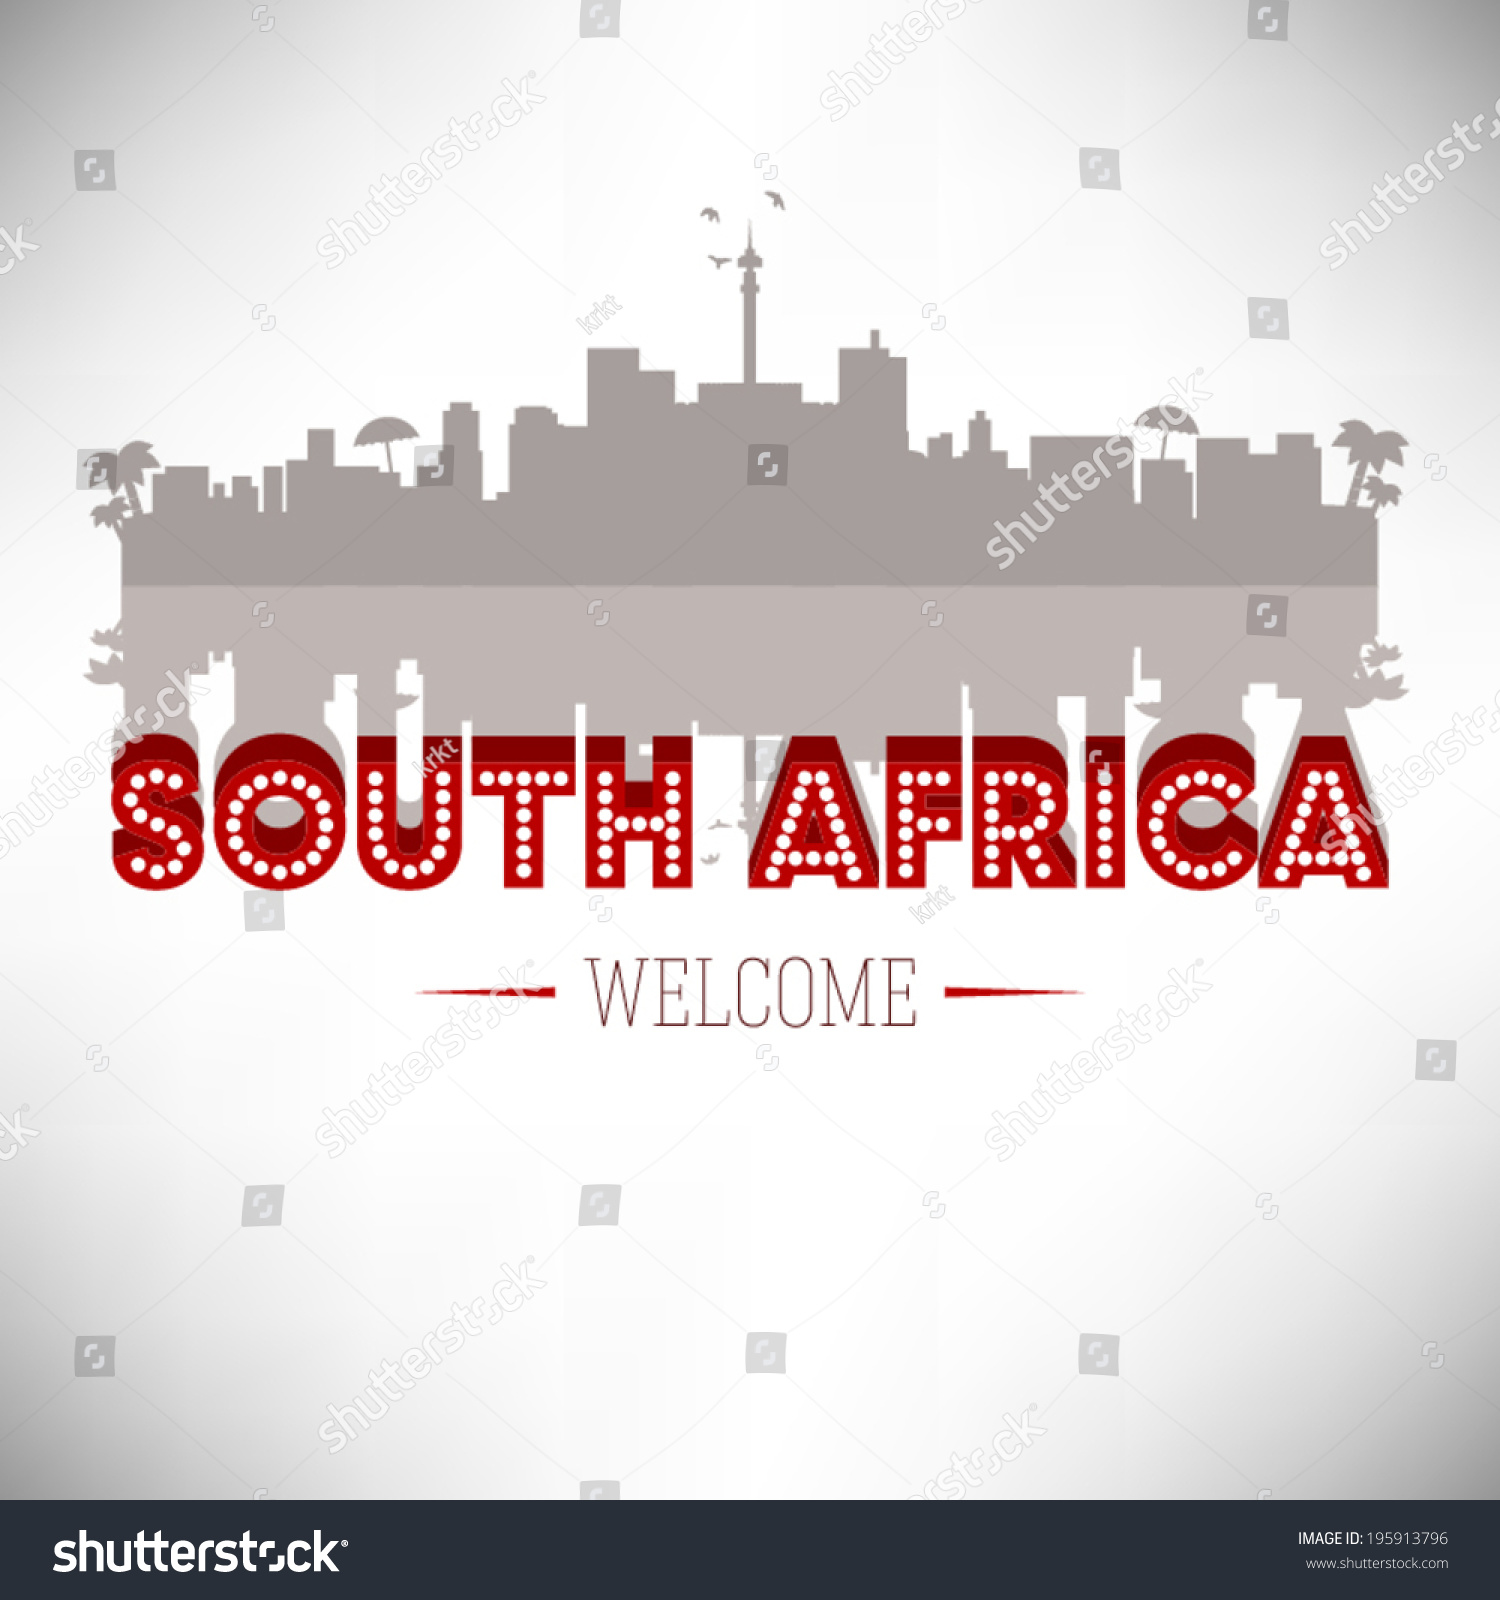 South Africa Greeting Card Vector Design Stock Vector Royalty Free